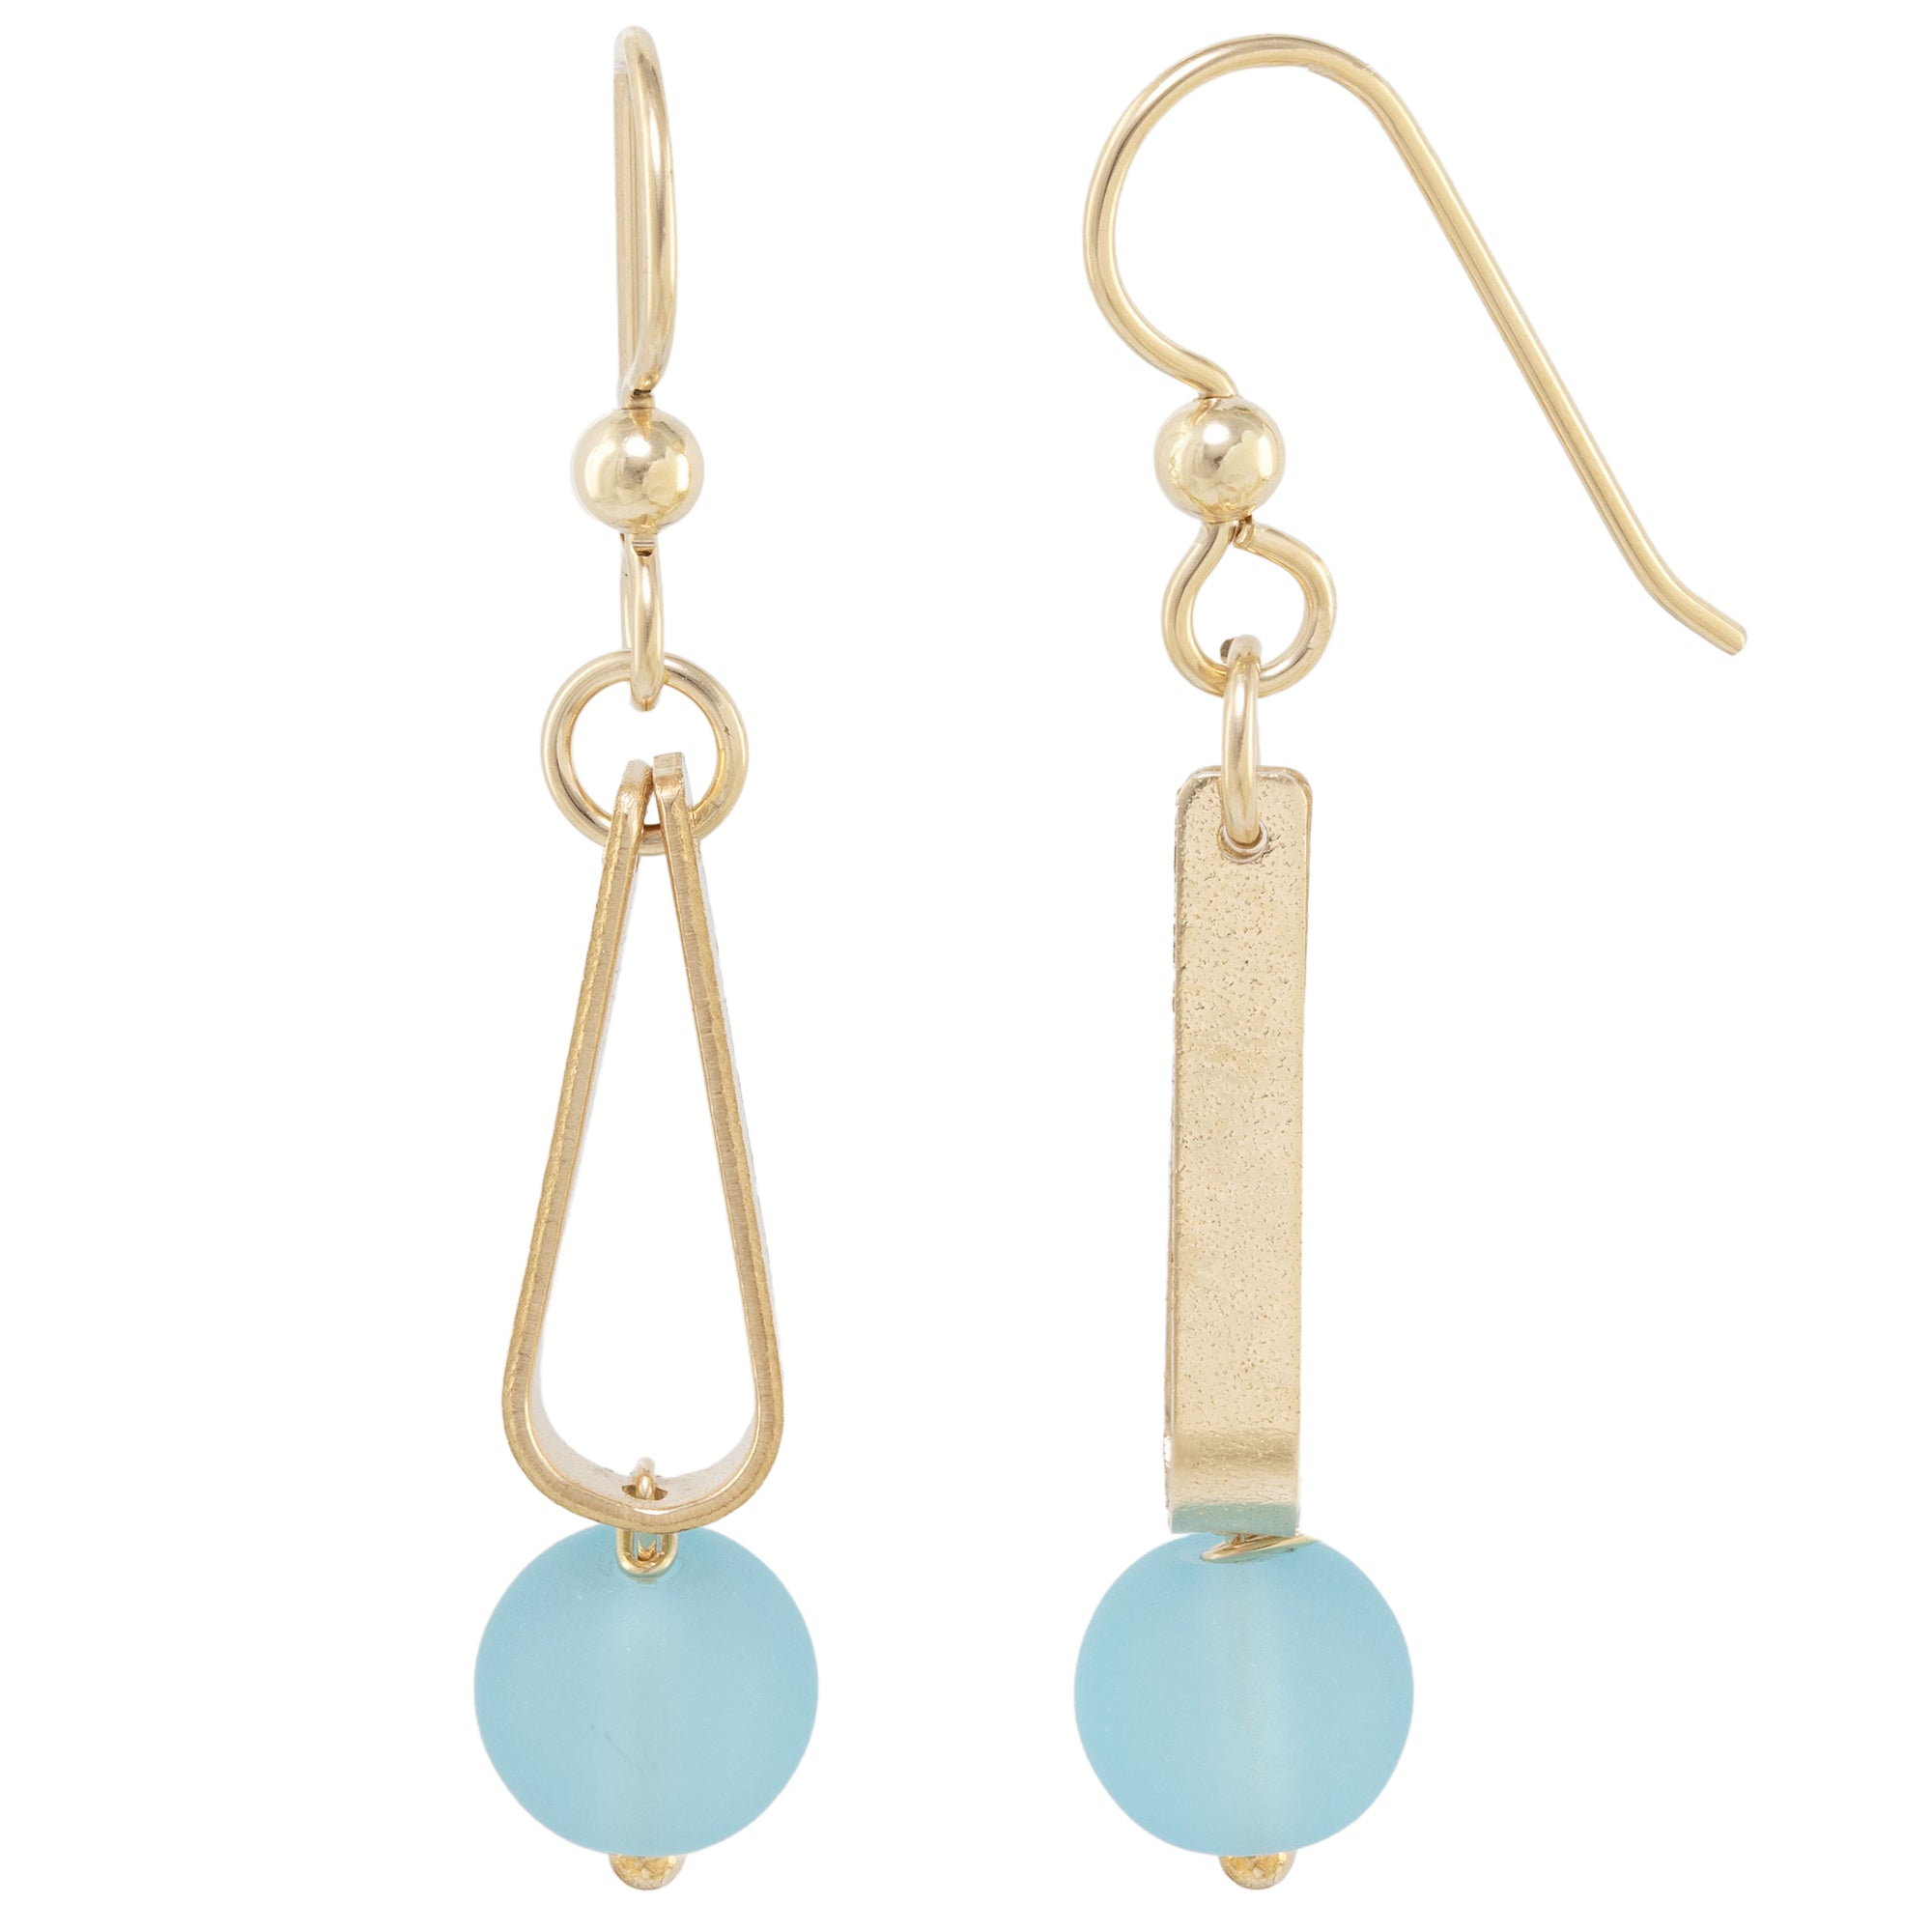 Light Baby Blue Round Recycled Glass Ball and 14K Gold Fill Strap Style Dangle Earrings